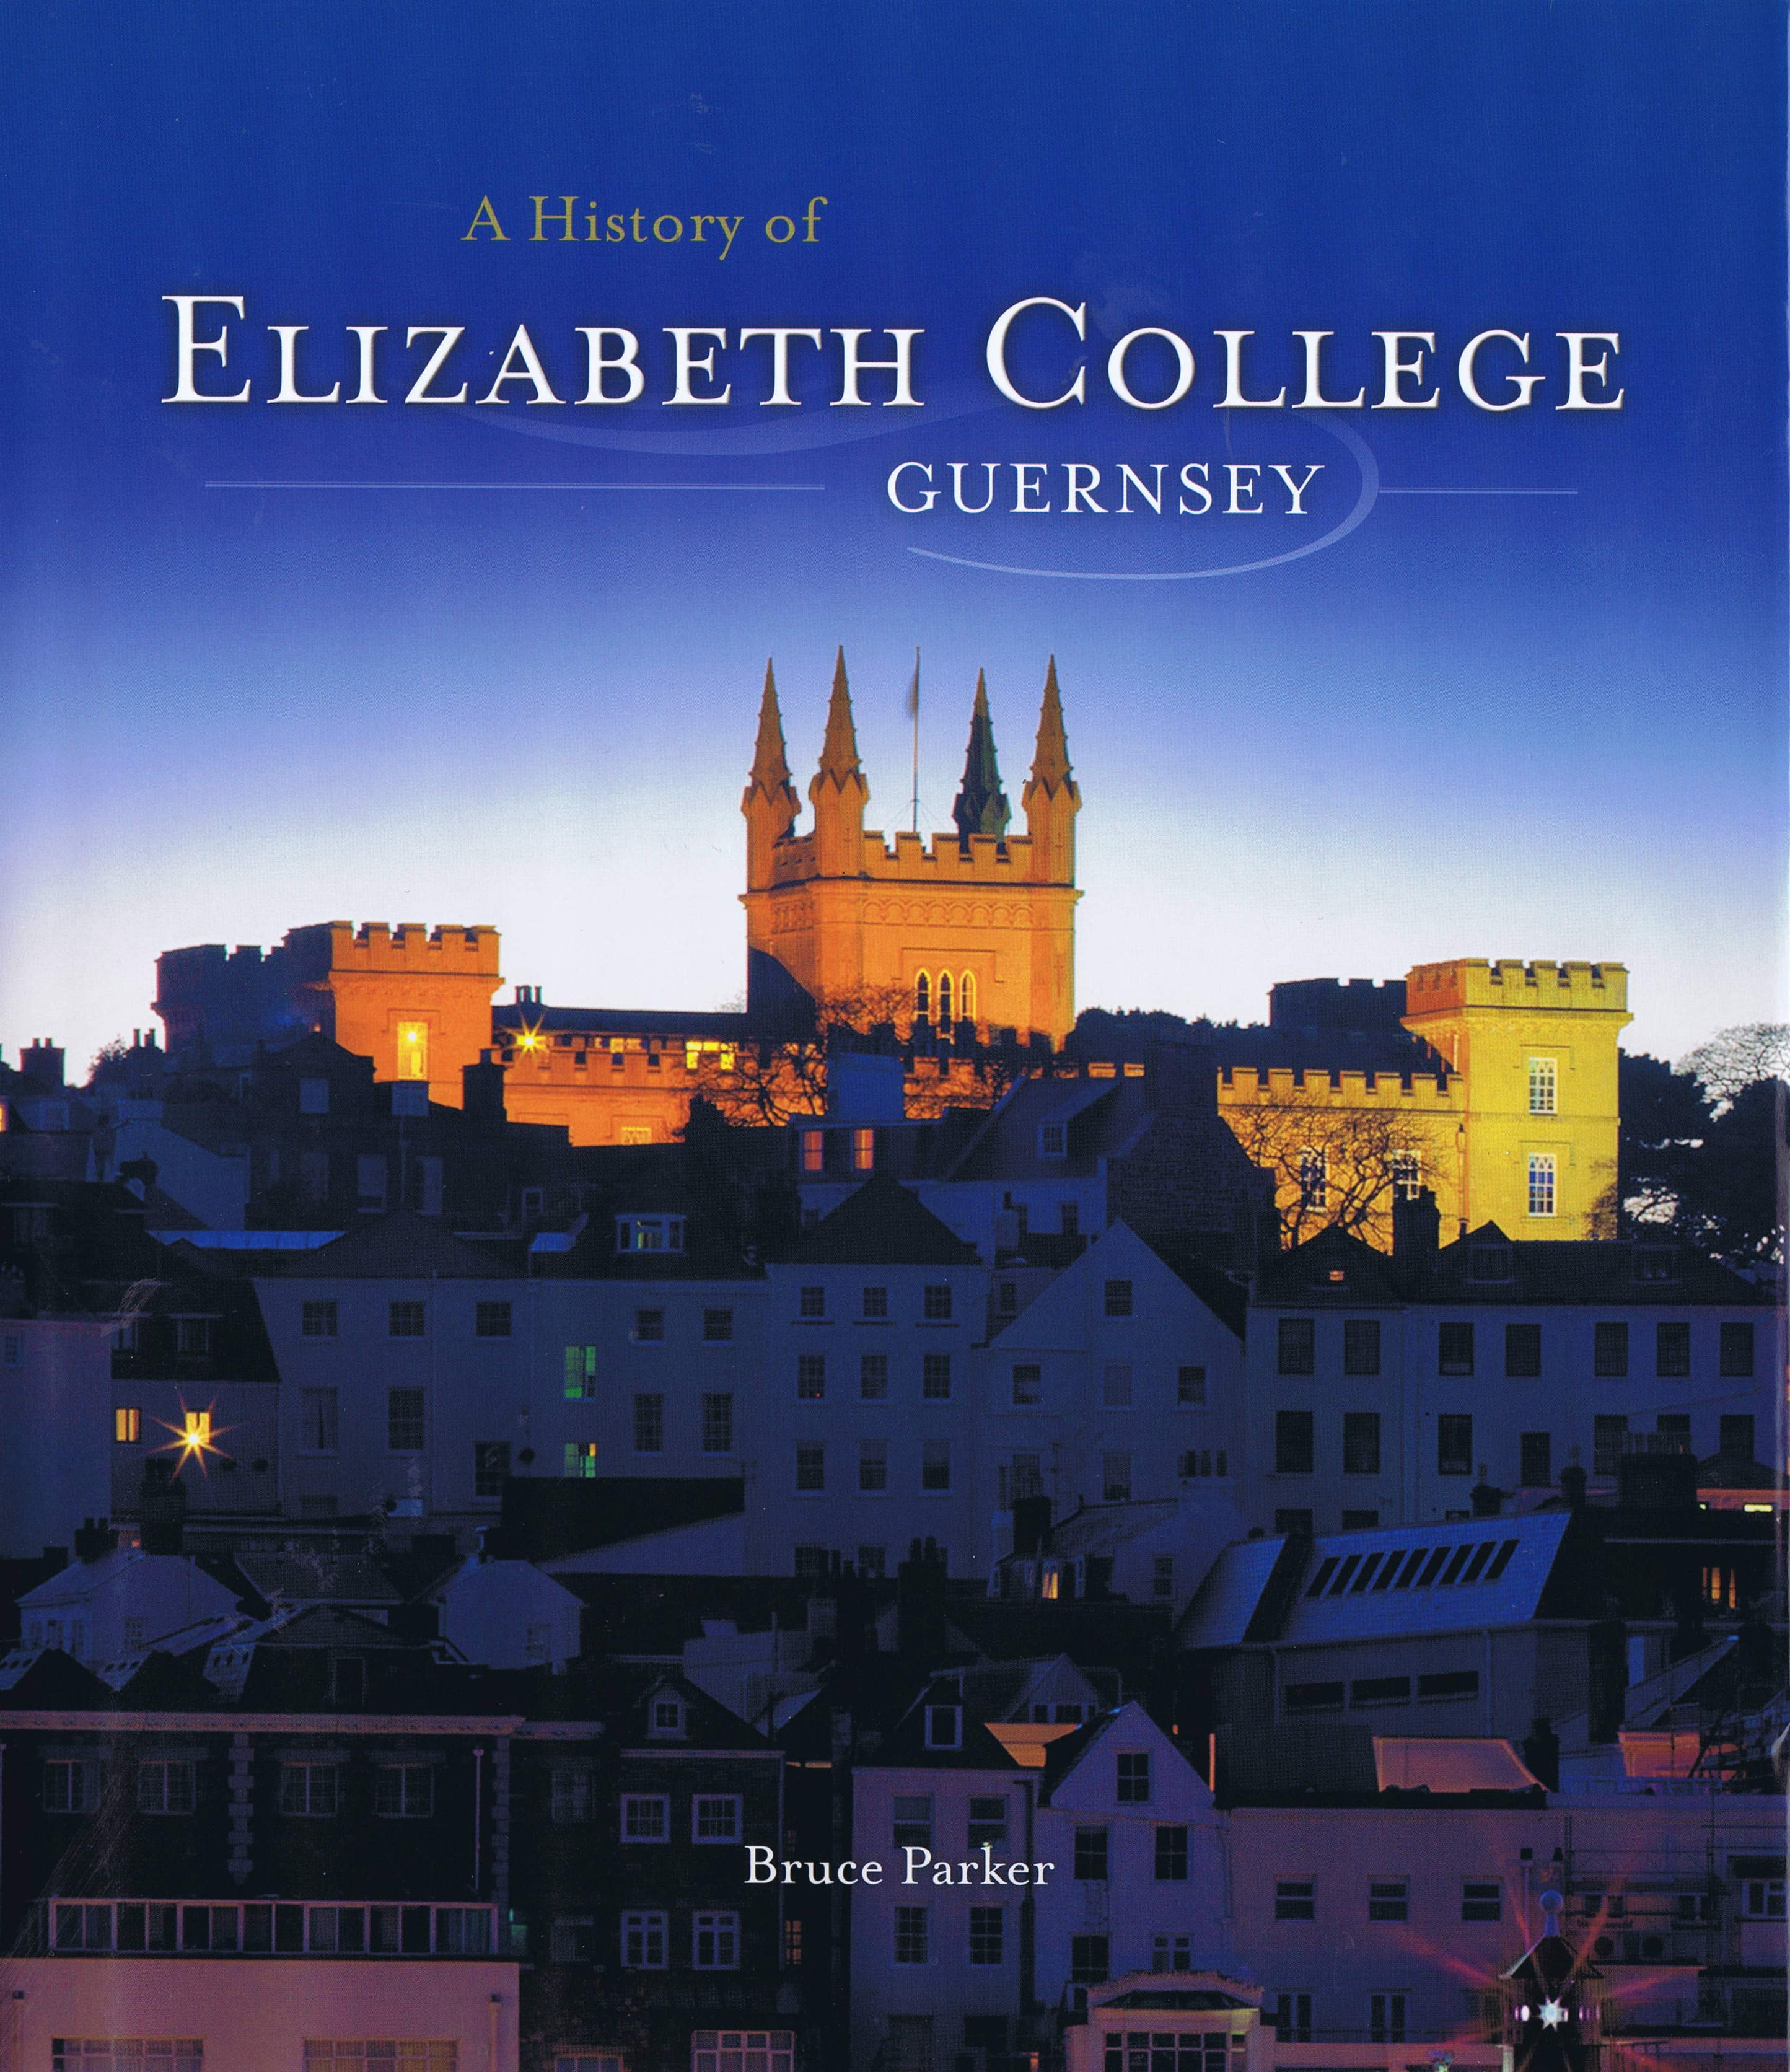 Book - A History of Elizabeth College by Bruce Parker